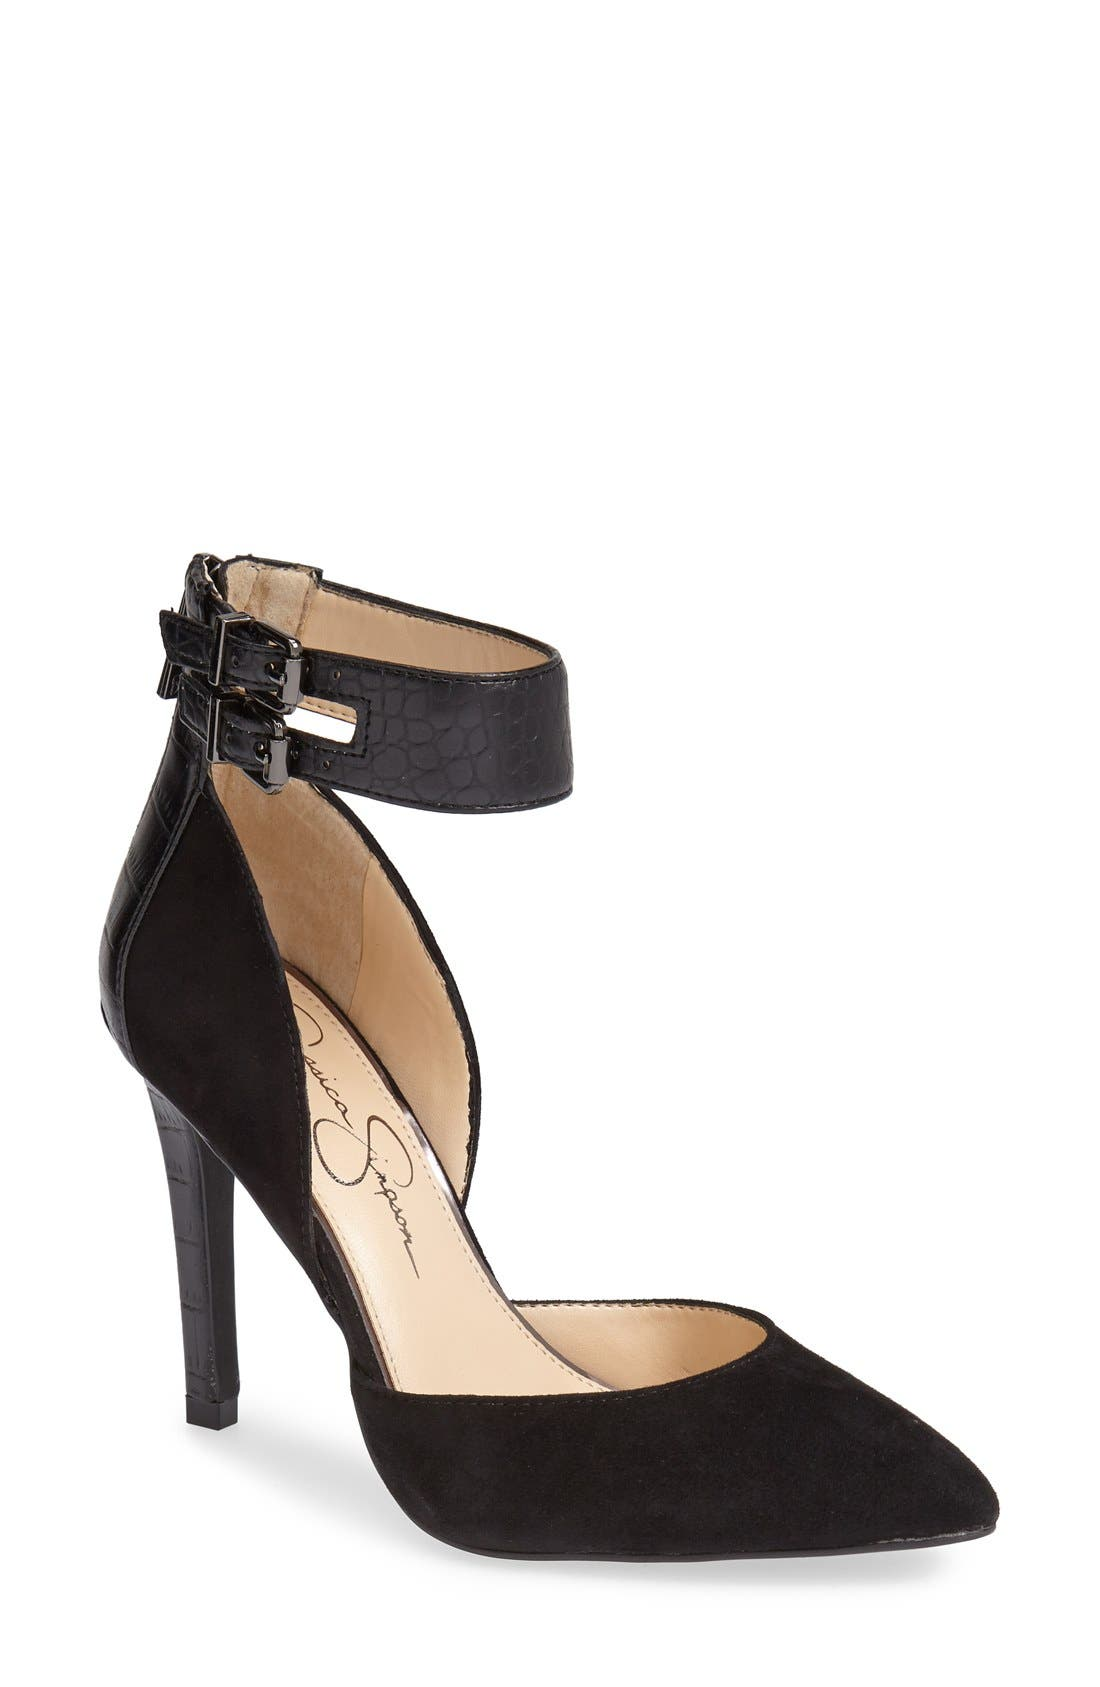 Main Image - Jessica Simpson 'Veday' d'Orsay Pump (Women)